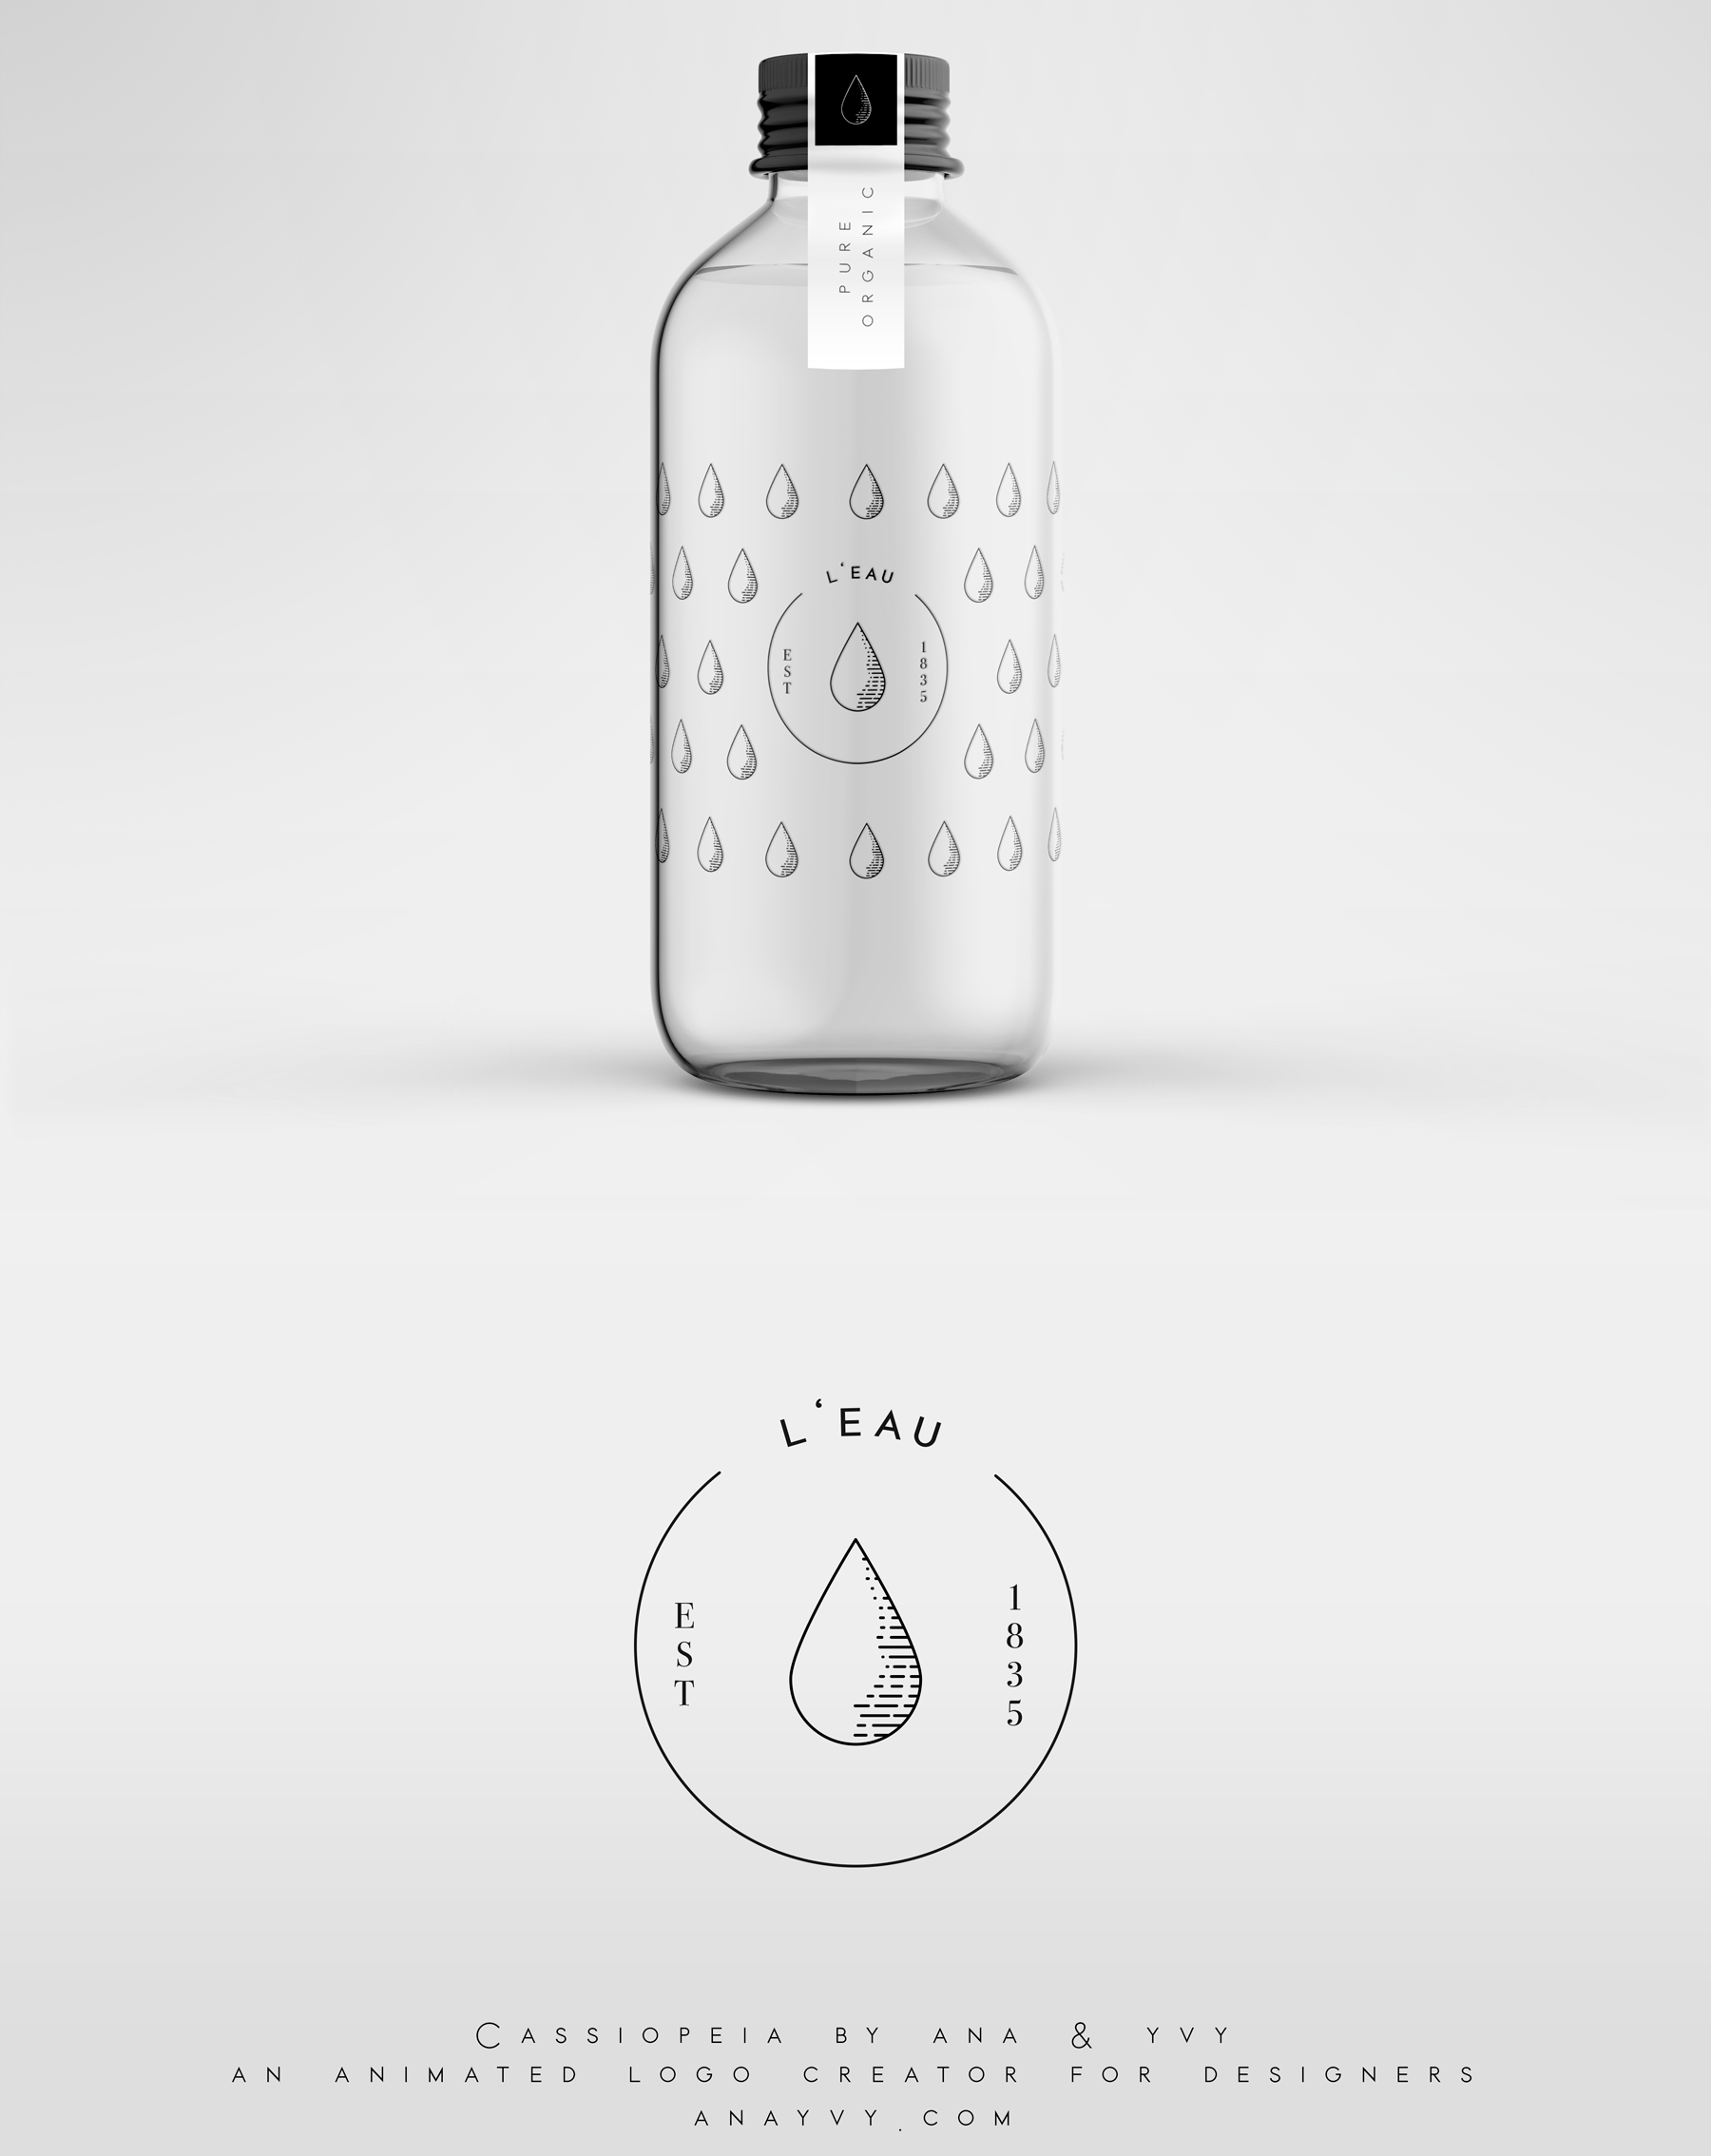 Cassiopeia-logo-design-animation-anayvy-motion-vintage-hand-greenery-apothecary-Water-2